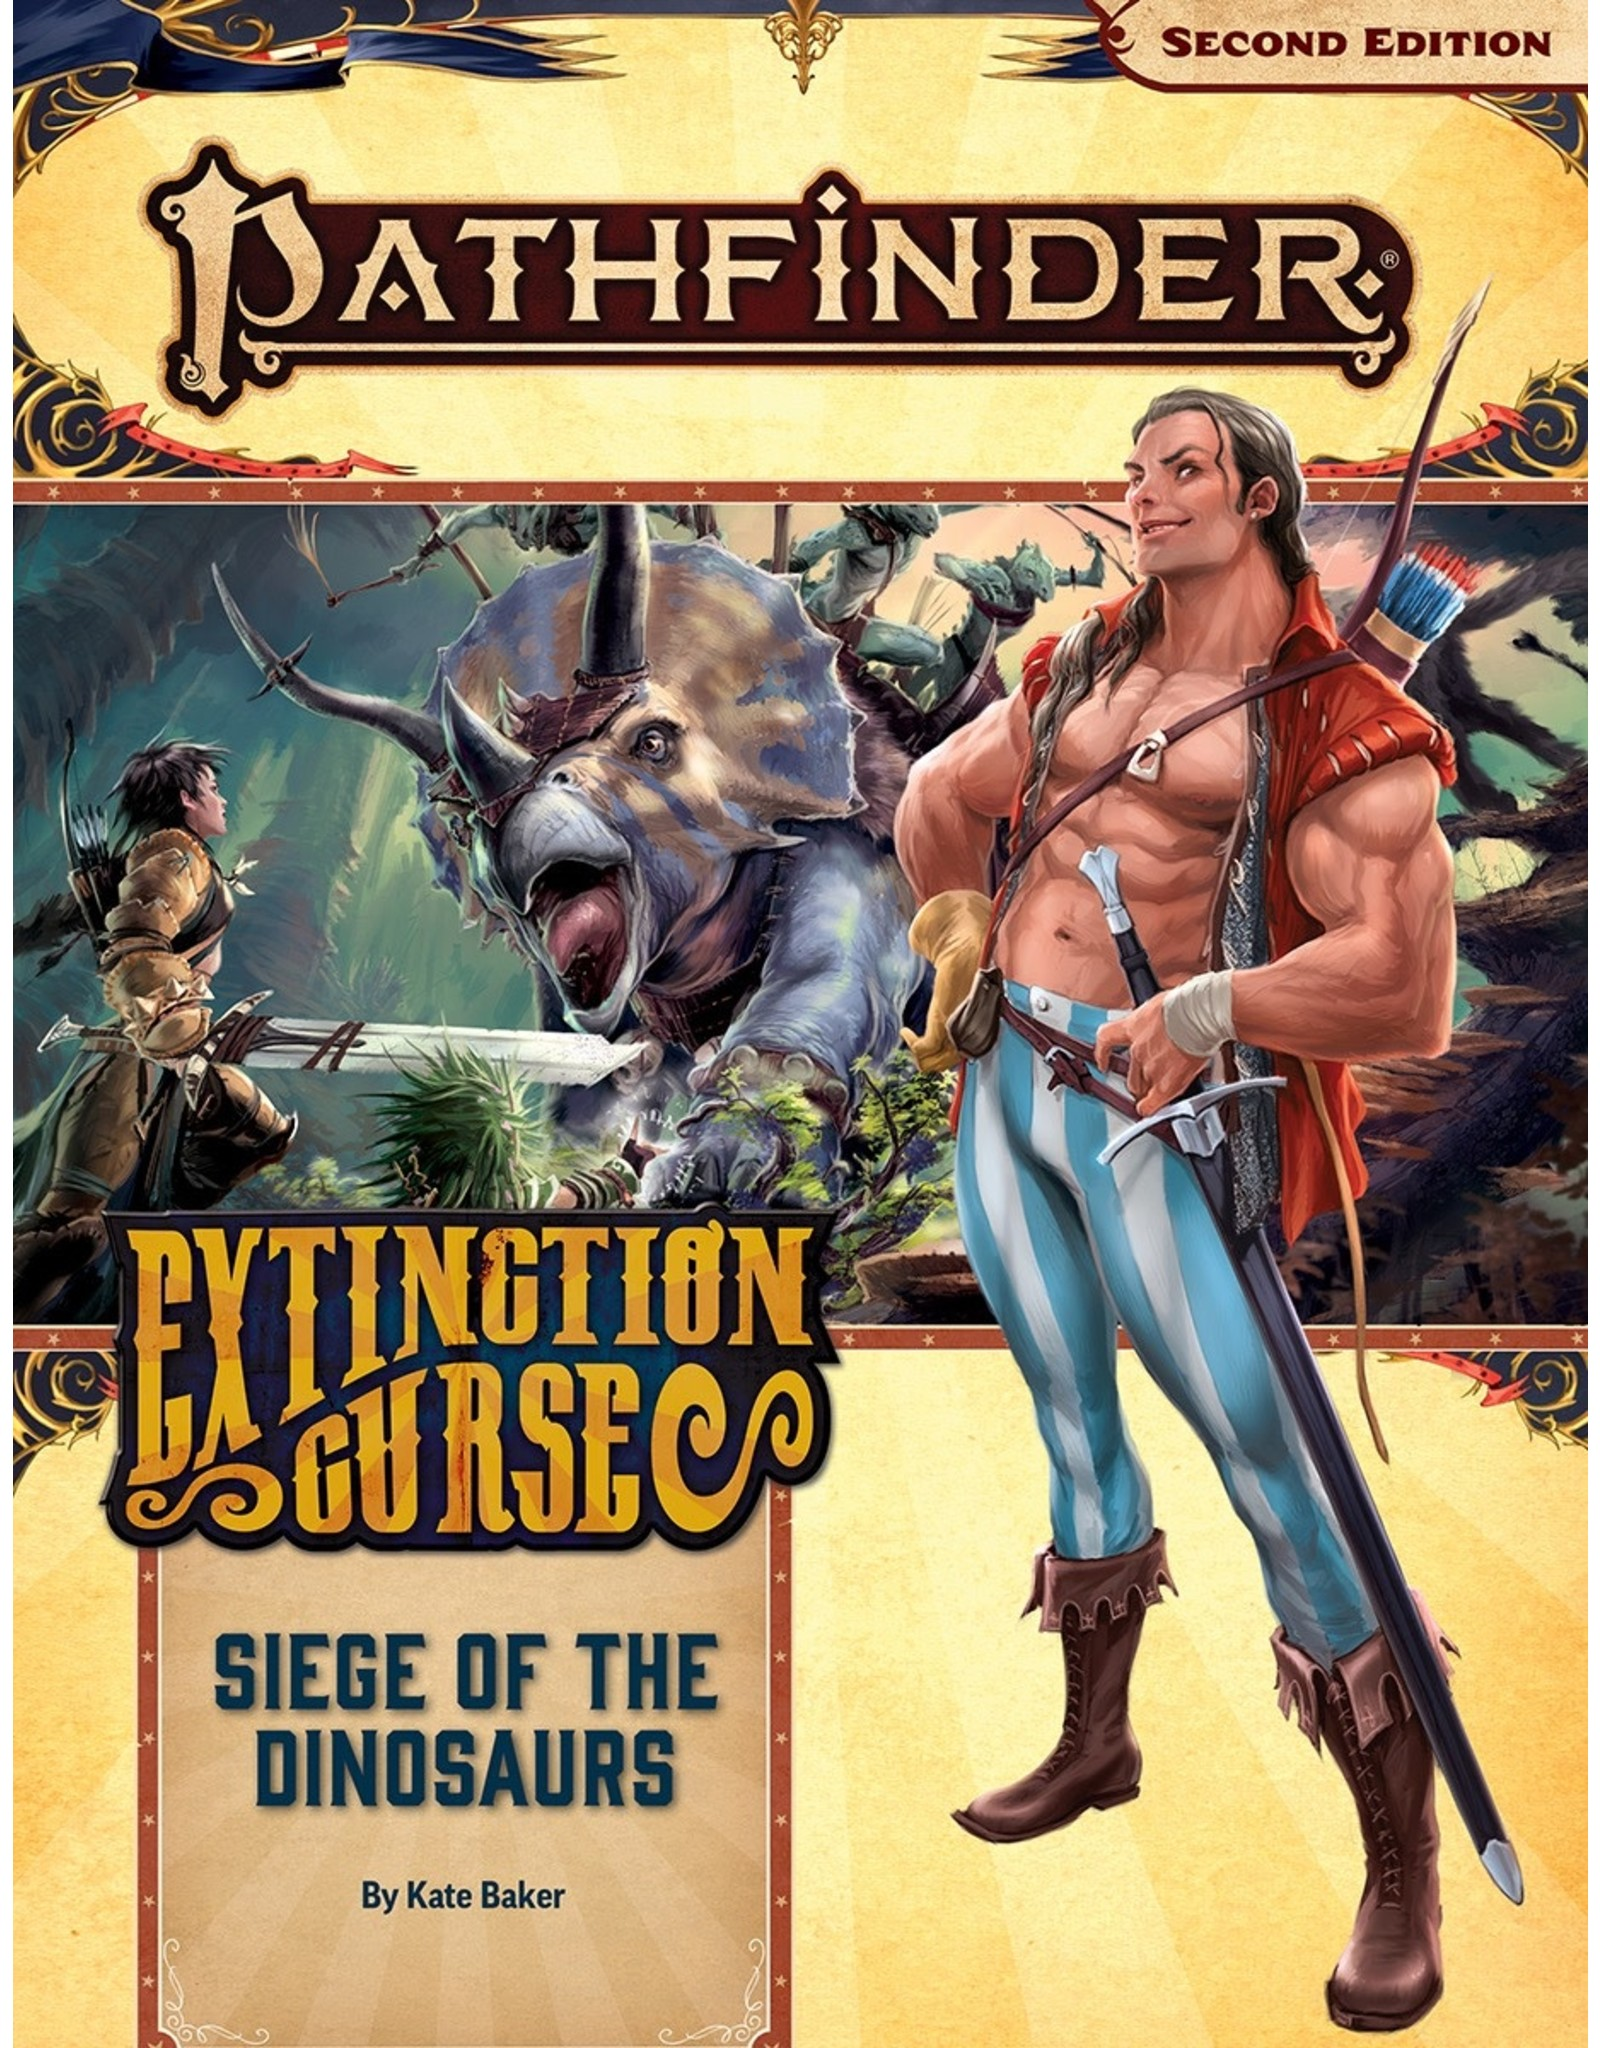 Paizo Pathfinder 2E: Extinction Curse - Siege of the Dinosaurs